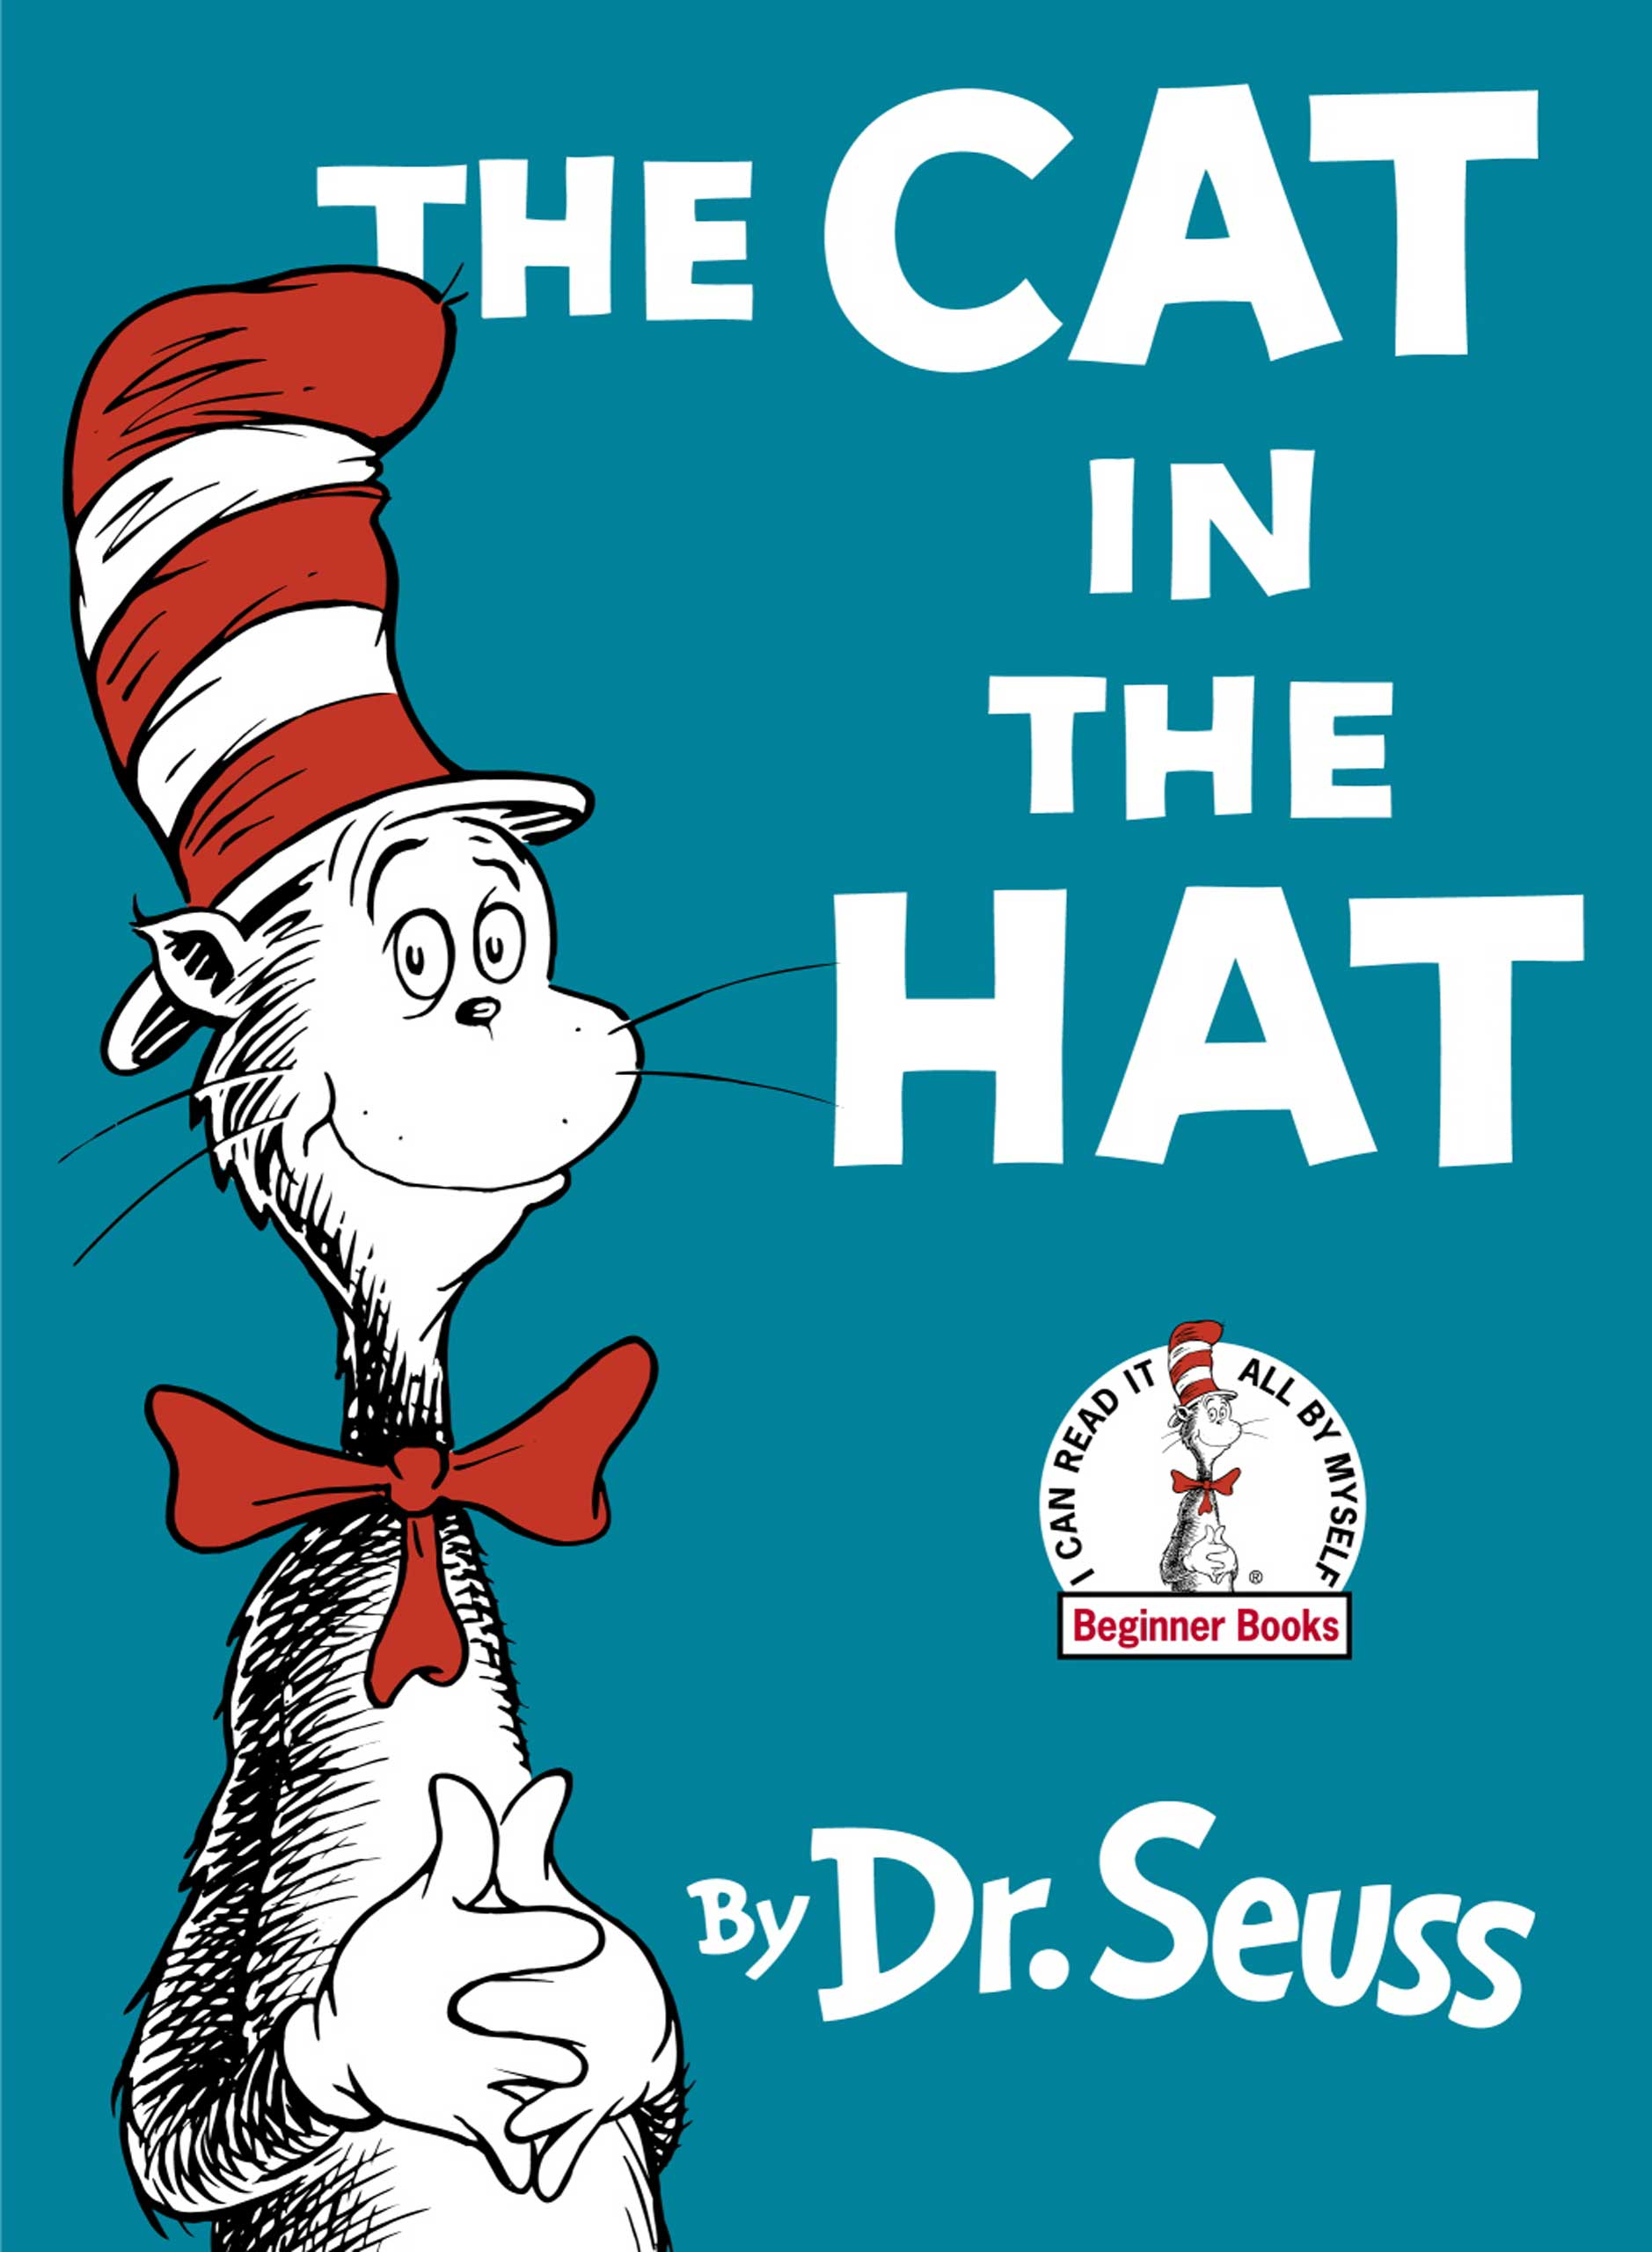 The Cat in the Hat, by Dr. Seuss.                                                                                                                            A big cat surprises Dick and Sally, transforming their dreary day at home into a wild adventure.                                                                                                                            Buy now: The Cat in the Hat